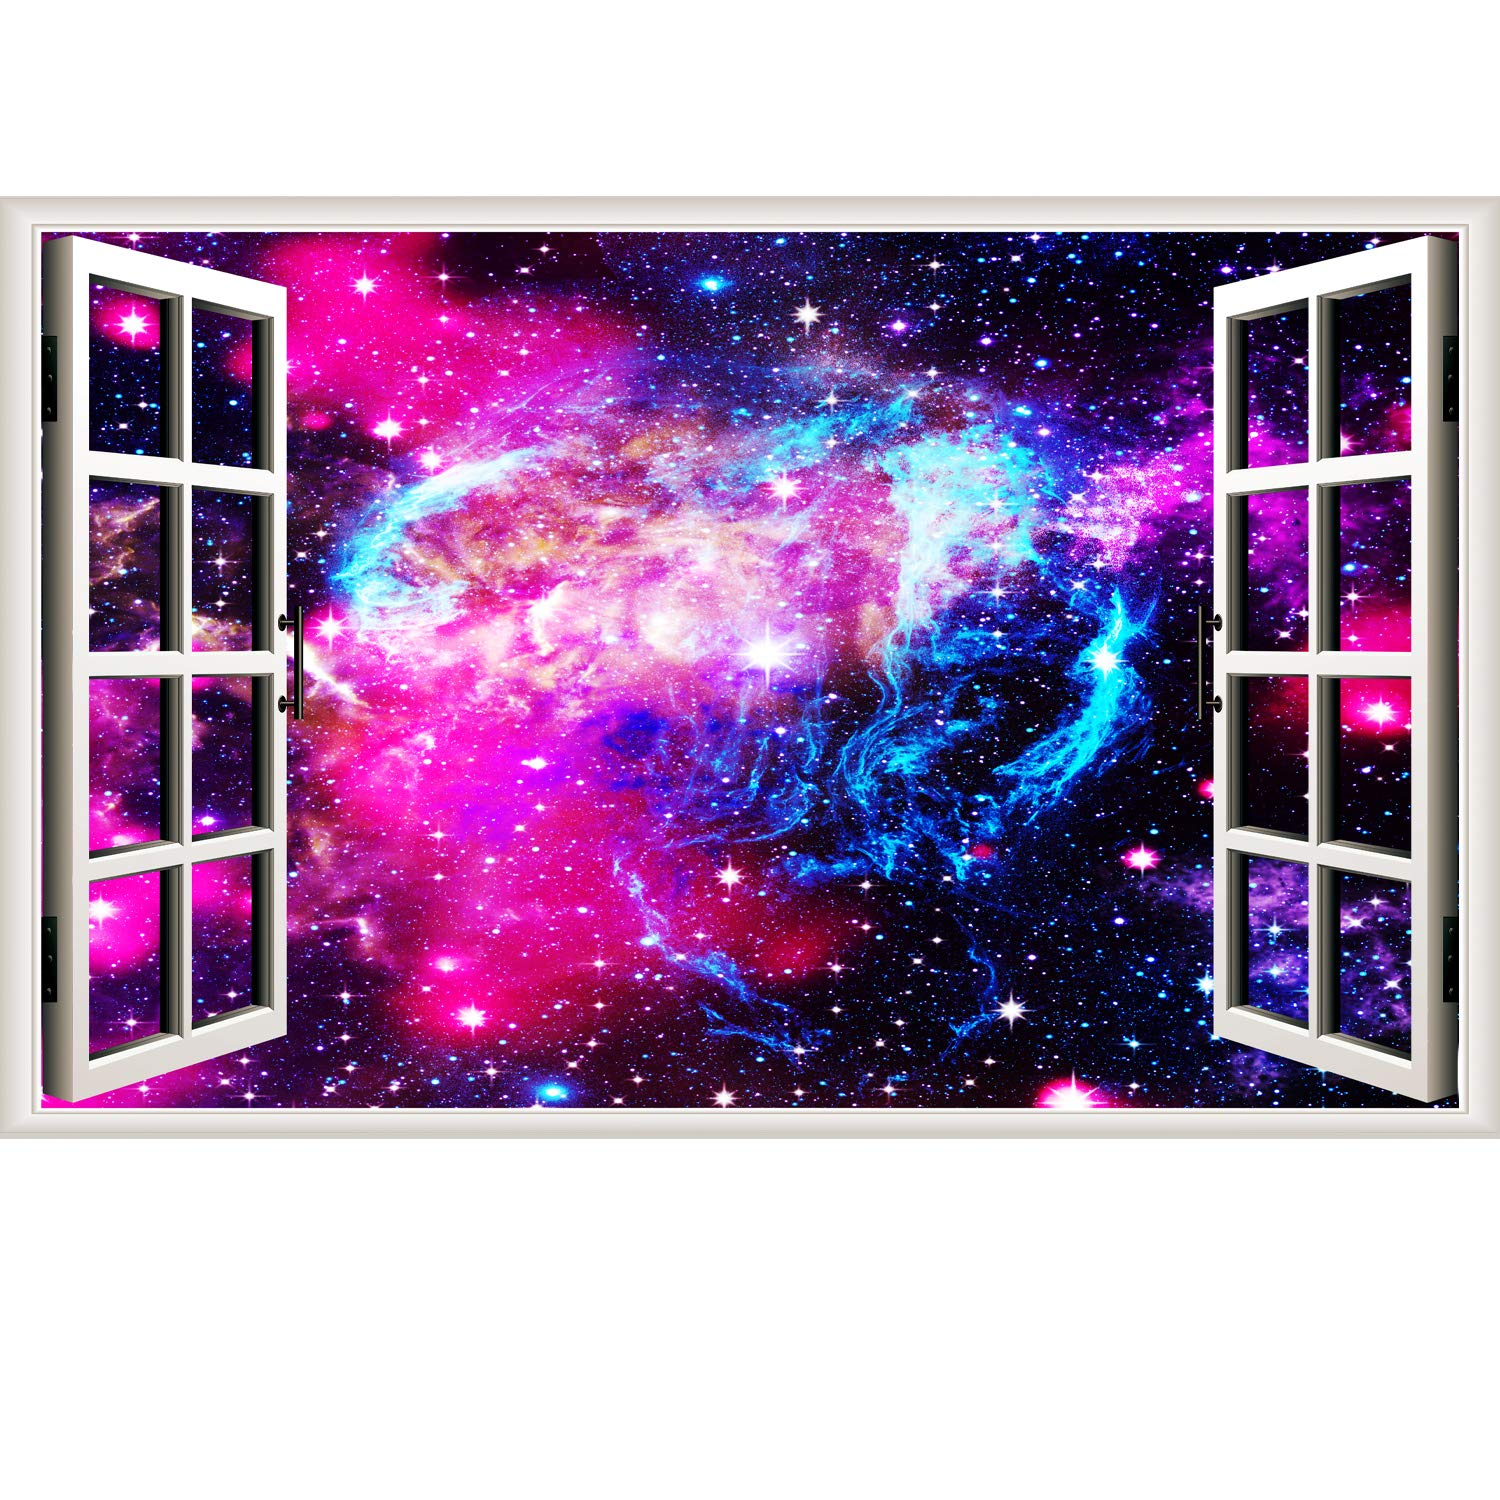 Rajahubri Starry Sky Window Wall Sticker Rose Red Space and Galaxy Fake Window Wall Decals Removable Outer Space Window View Wall Arts Decals Decors for Living Room